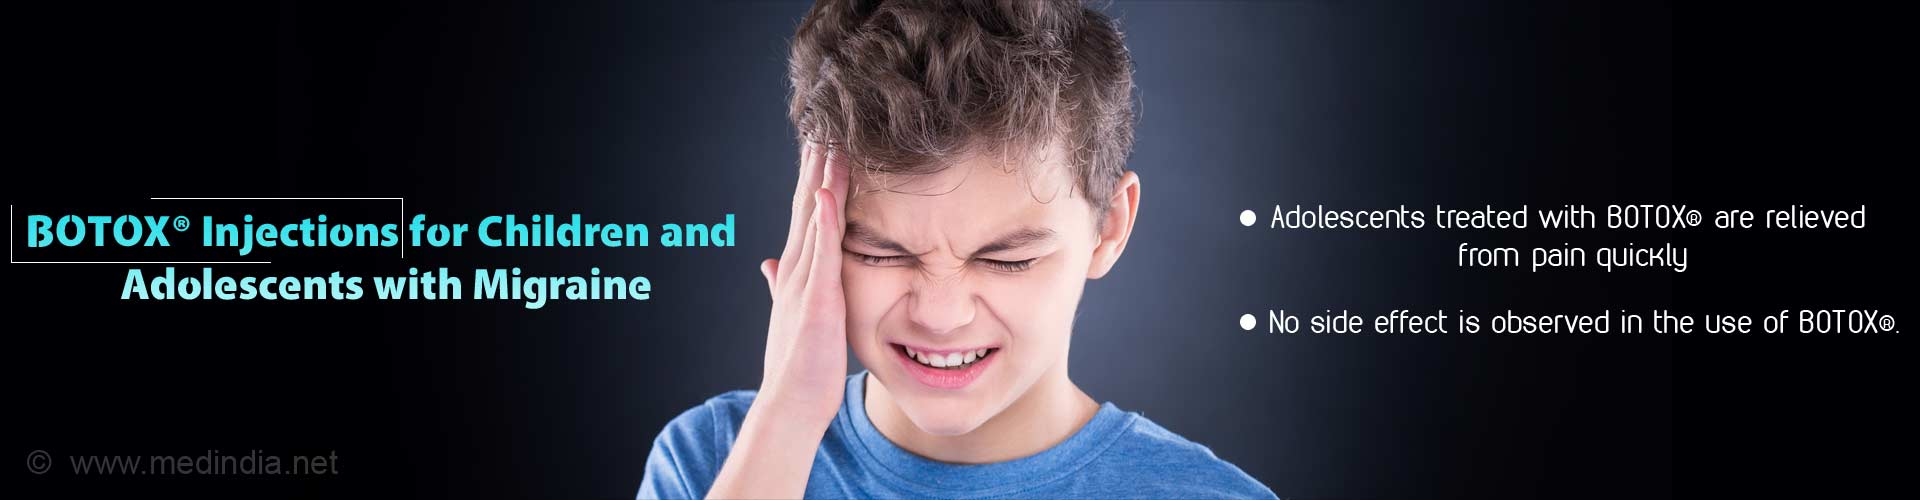 BOTOX injections for children and adolescents with migraine